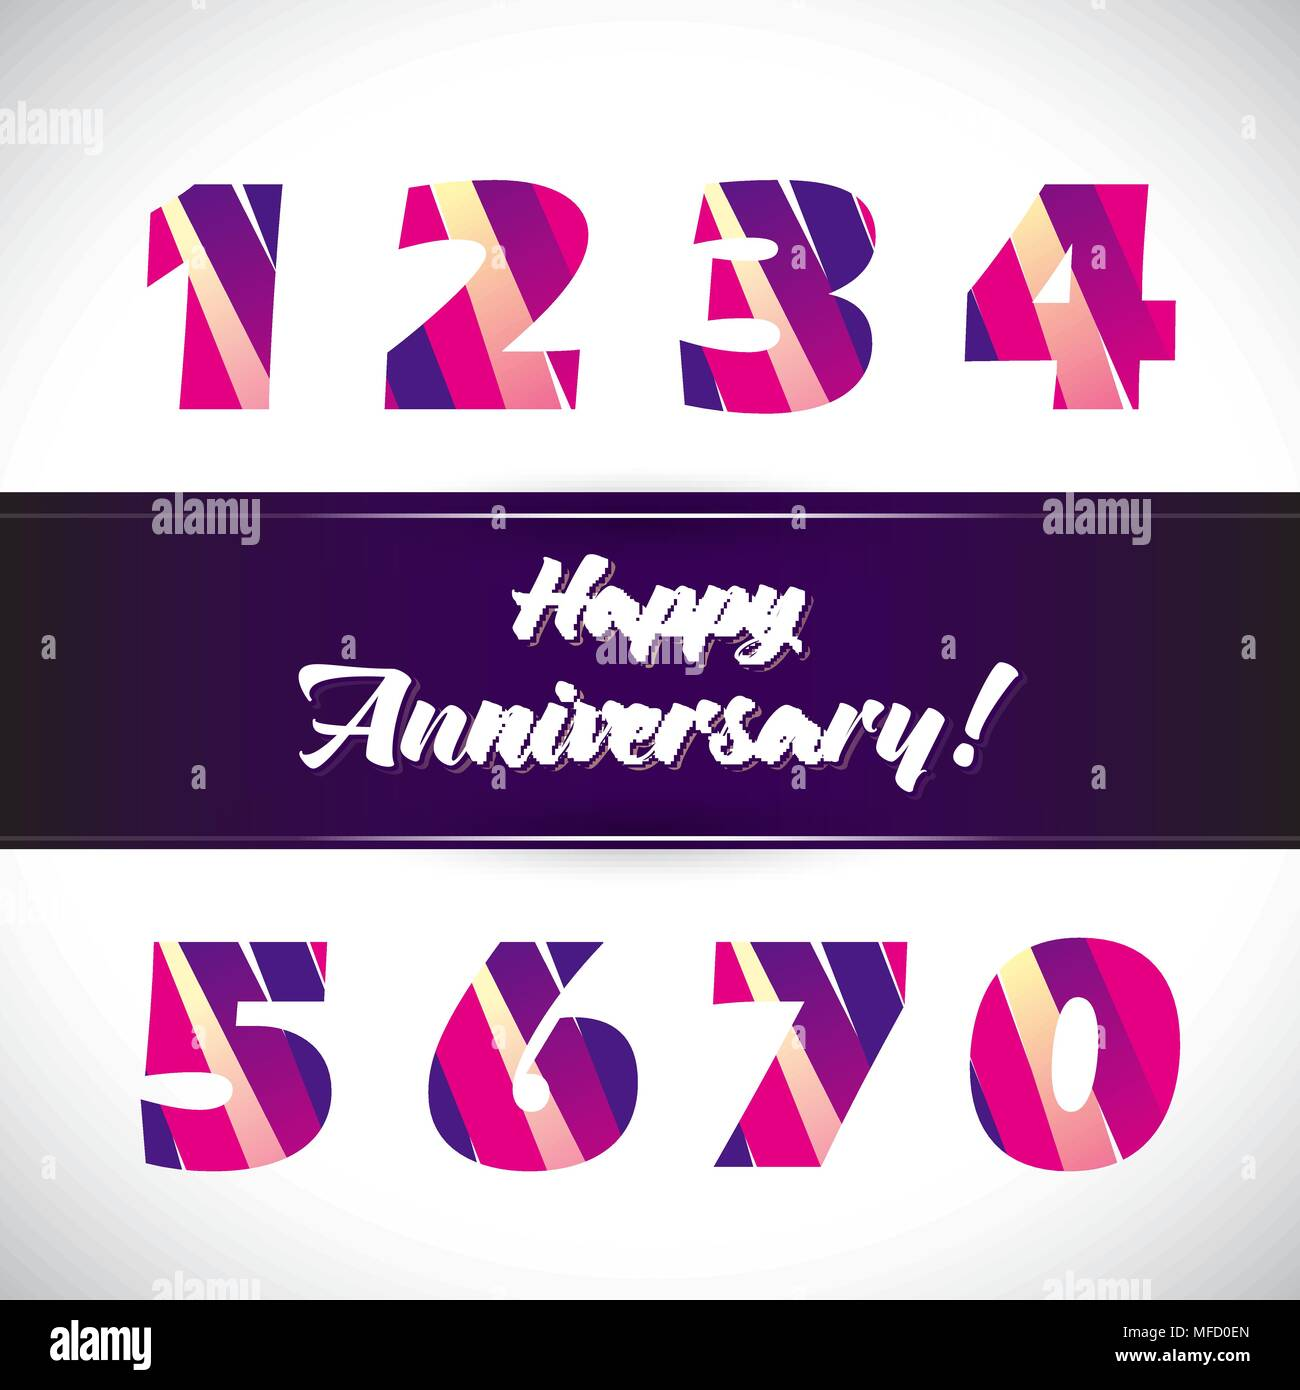 Vector set of anniversary signs, symbols. Ten, fifteen, twenty, thirty, forty, fifty, sixty seventy years jubilee design elements collection - Stock Vector